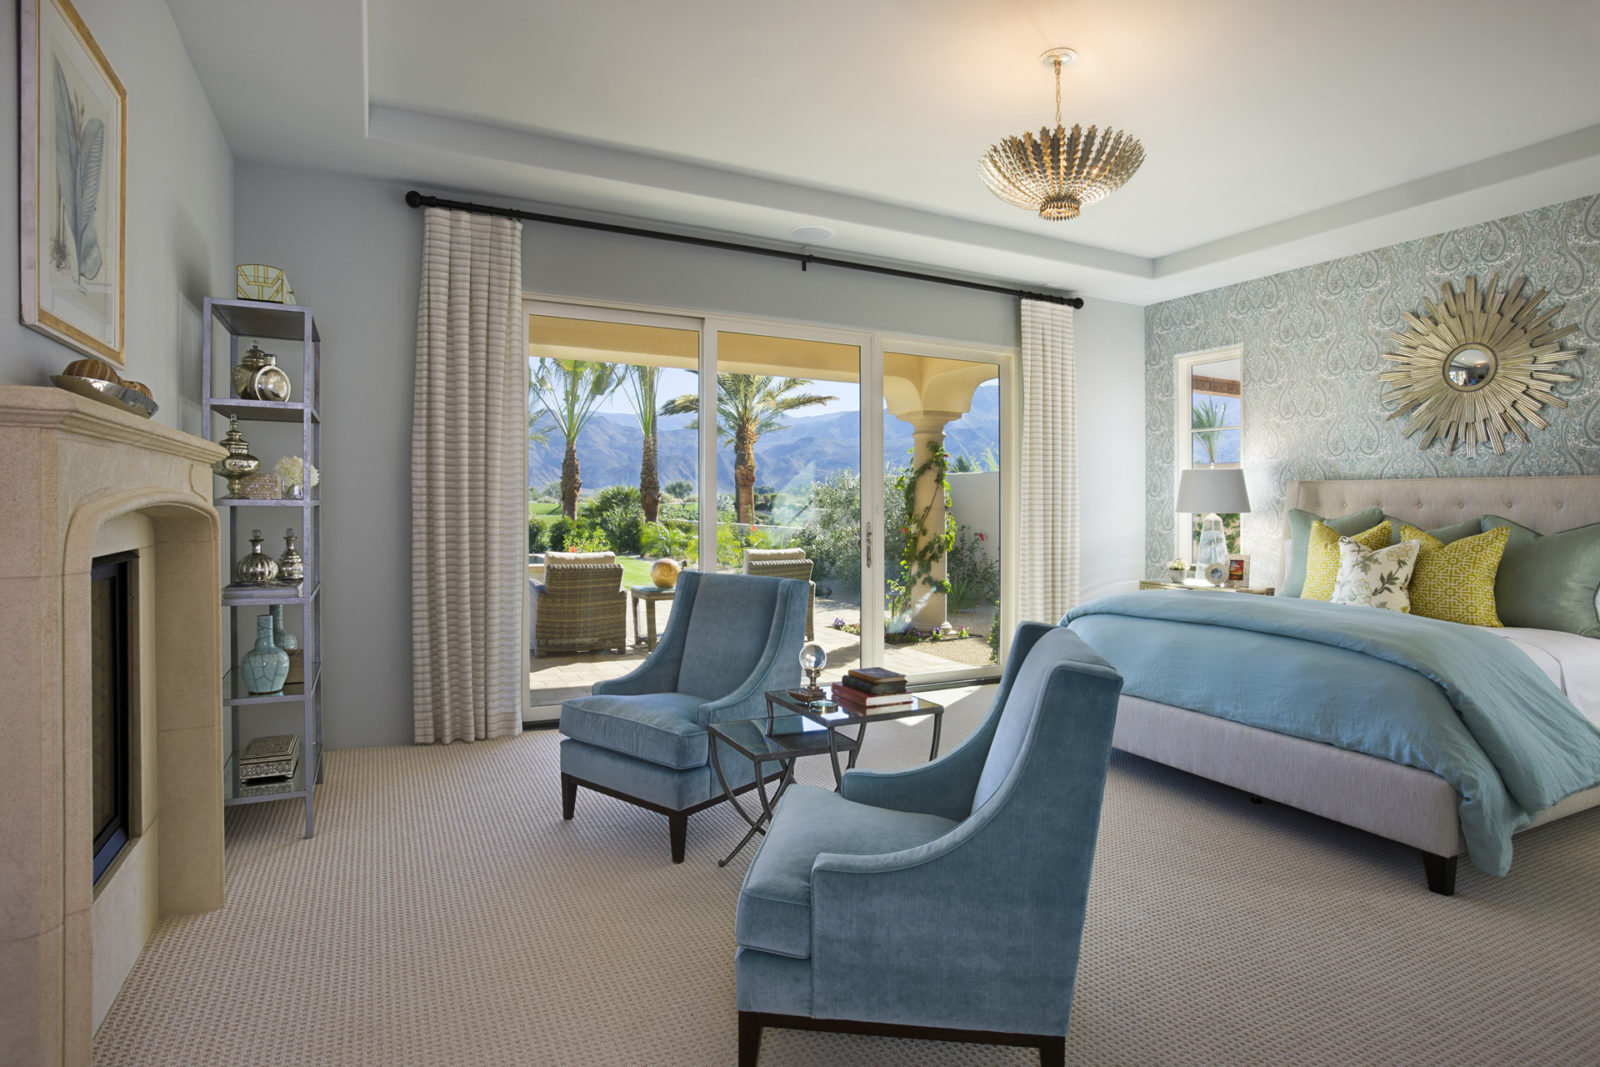 Barclay Butera, Barclay Butera Interiors, west-coast designers, luxury designers, exclusive designers, top interior designers, California interior designers, Greystone, Palm Springs, California,